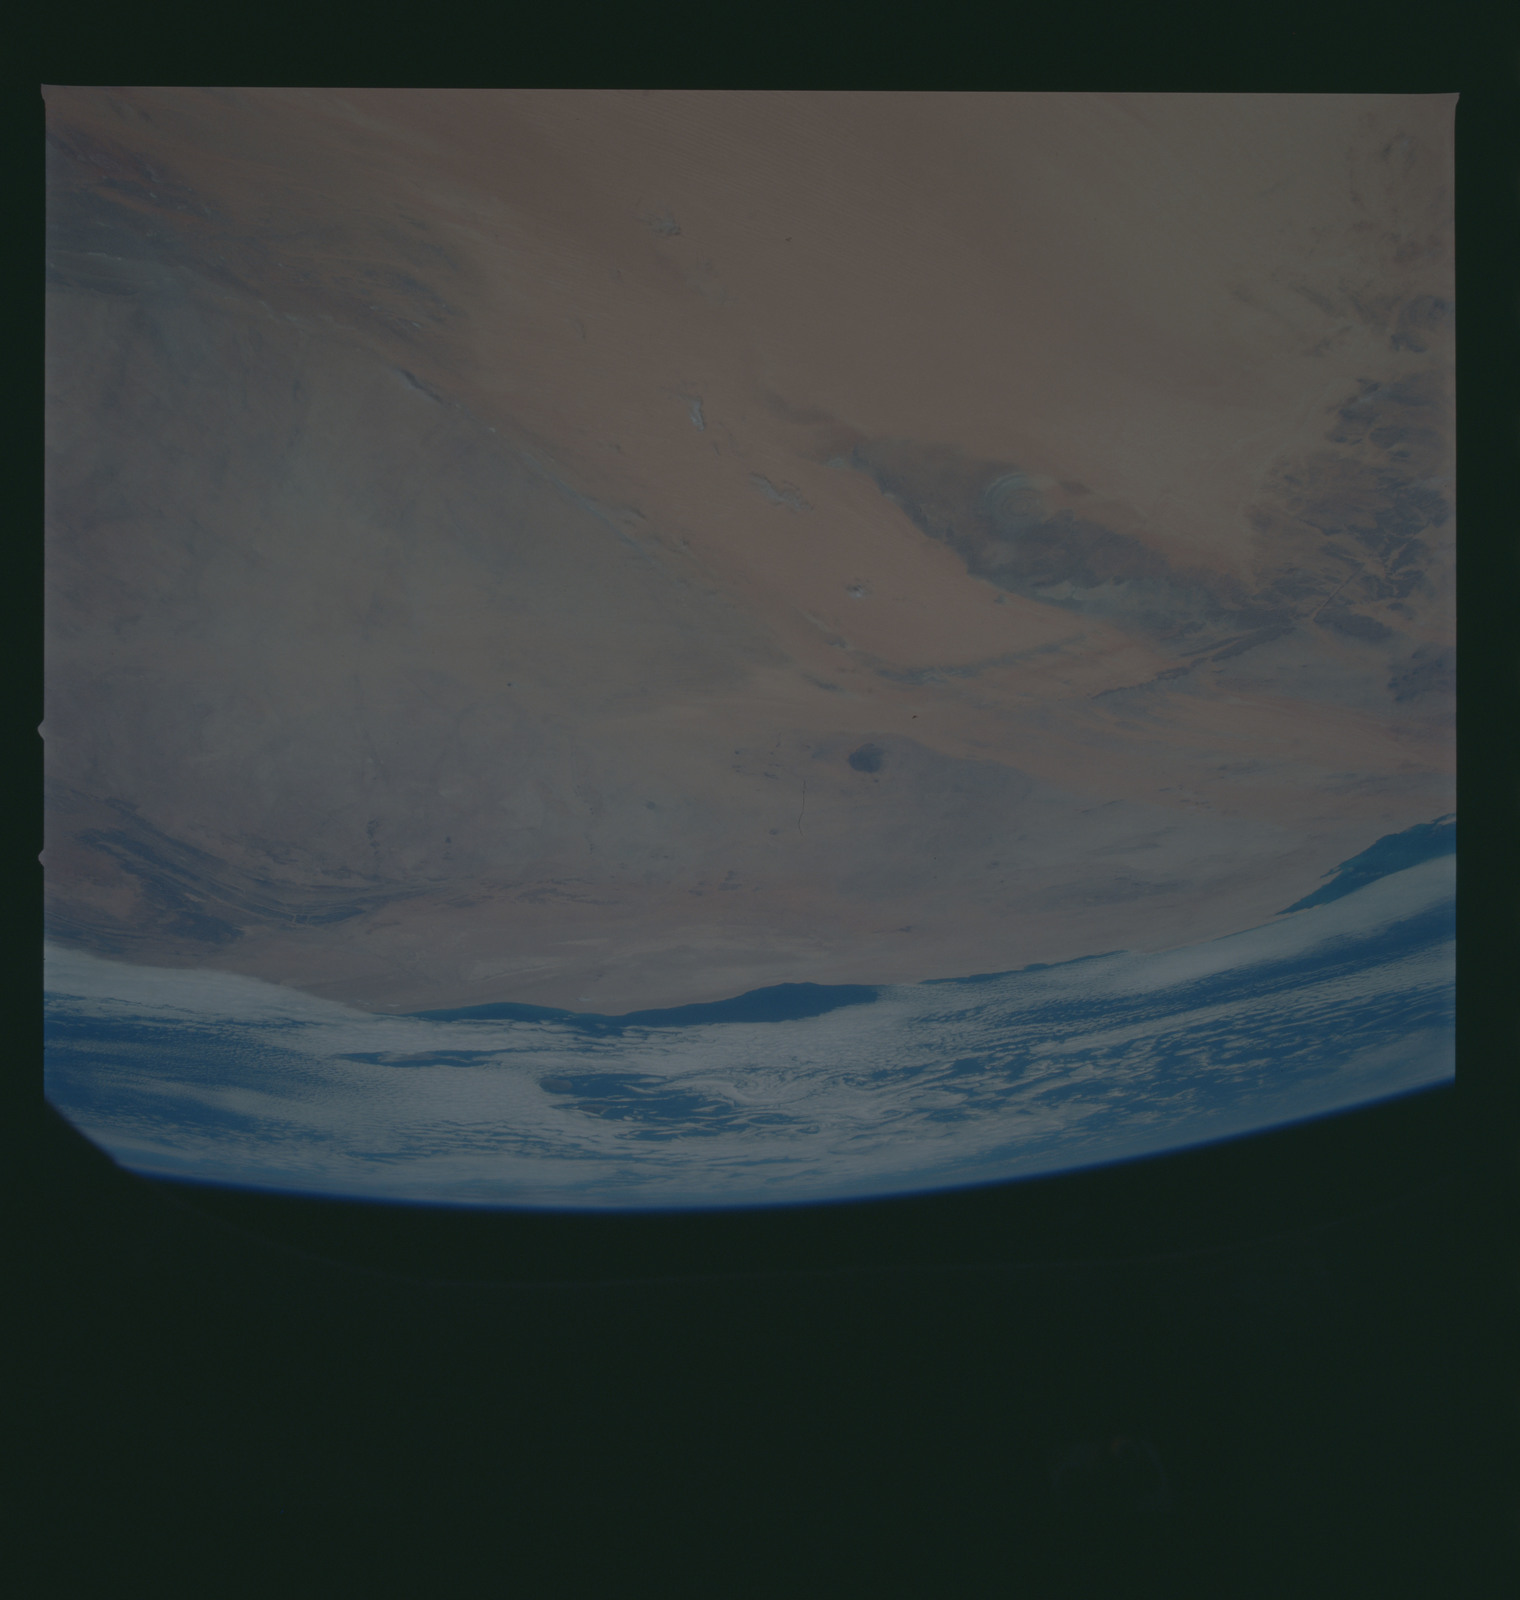 S37-96-038 - STS-037 - Earth observations taken from OV-104 during STS-37 mission